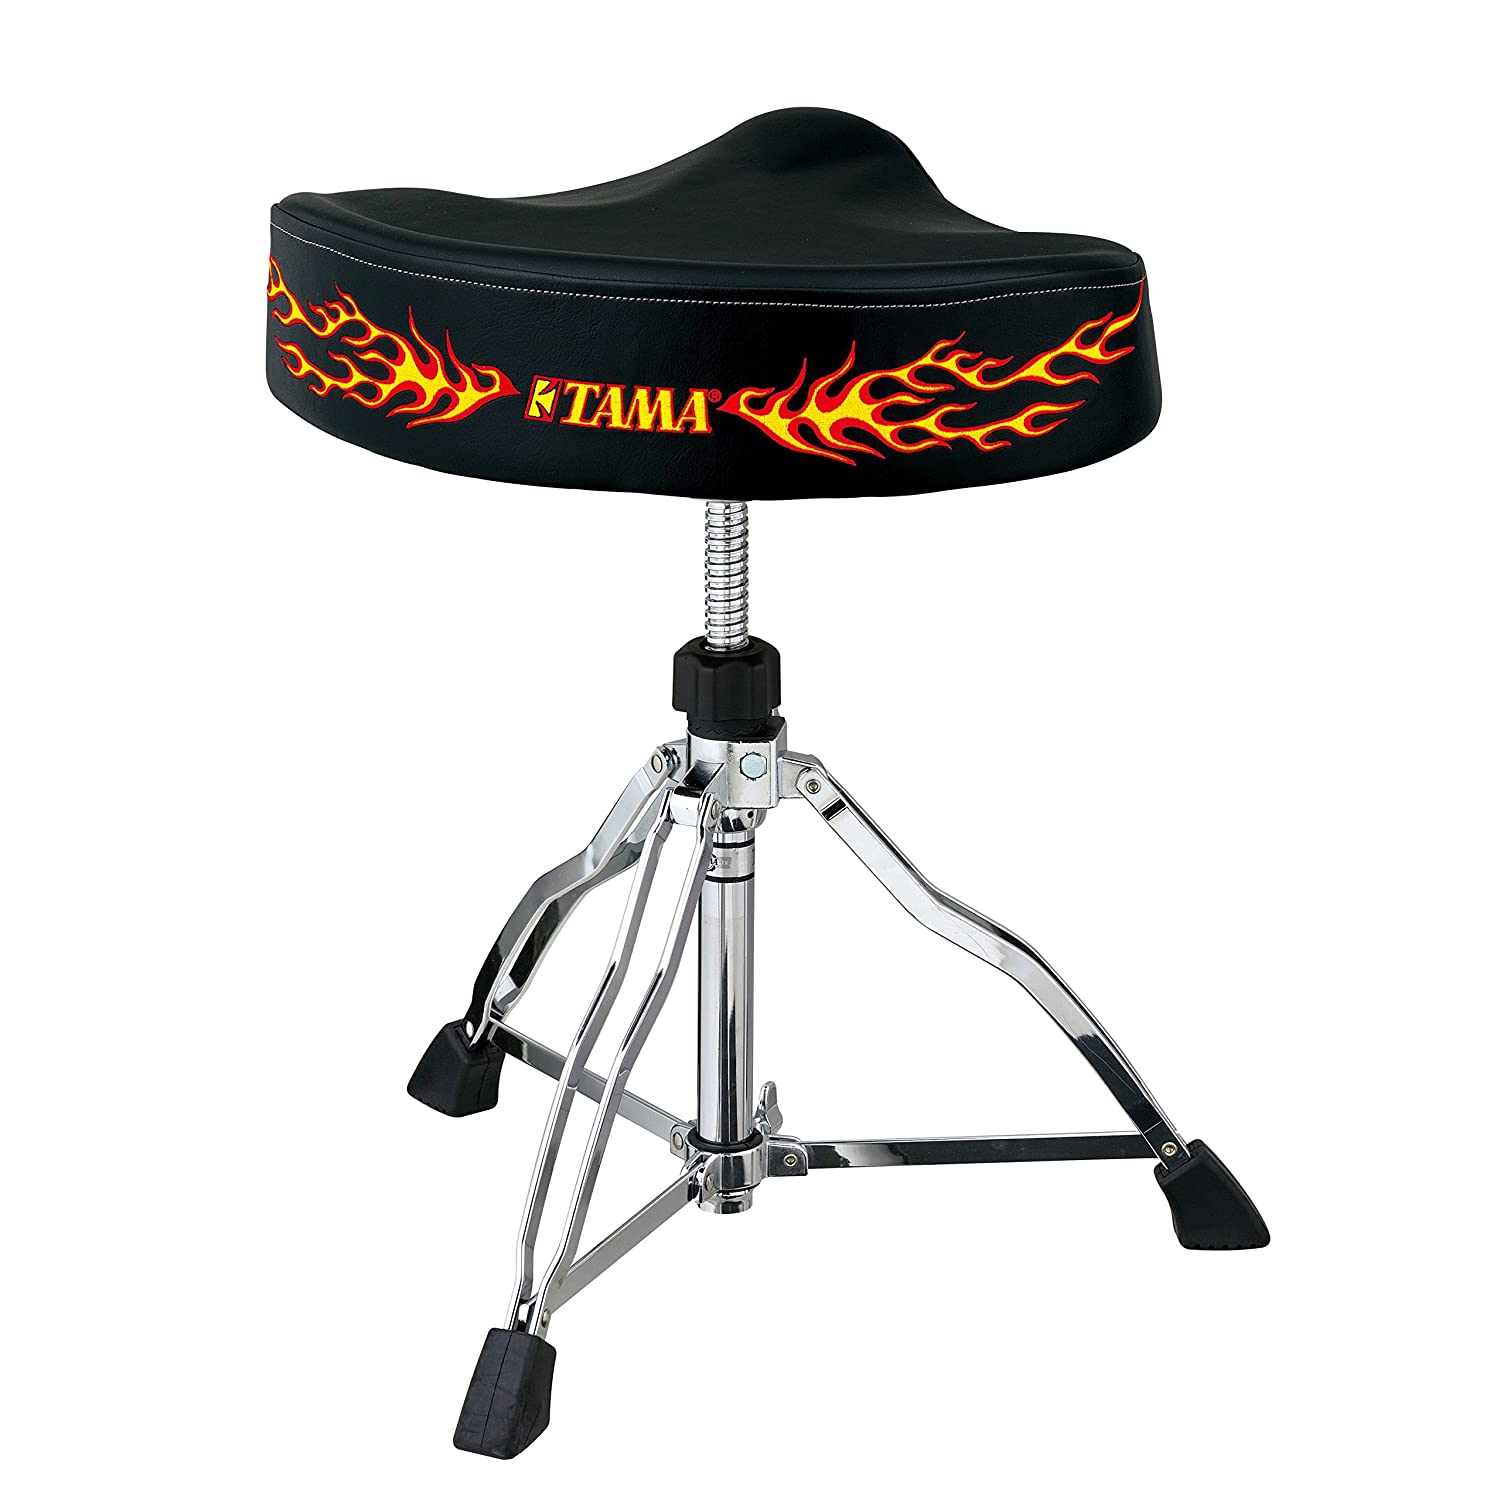 Tama Hot Seat Wide Rider Drum Throne - Leather Top HT530FE